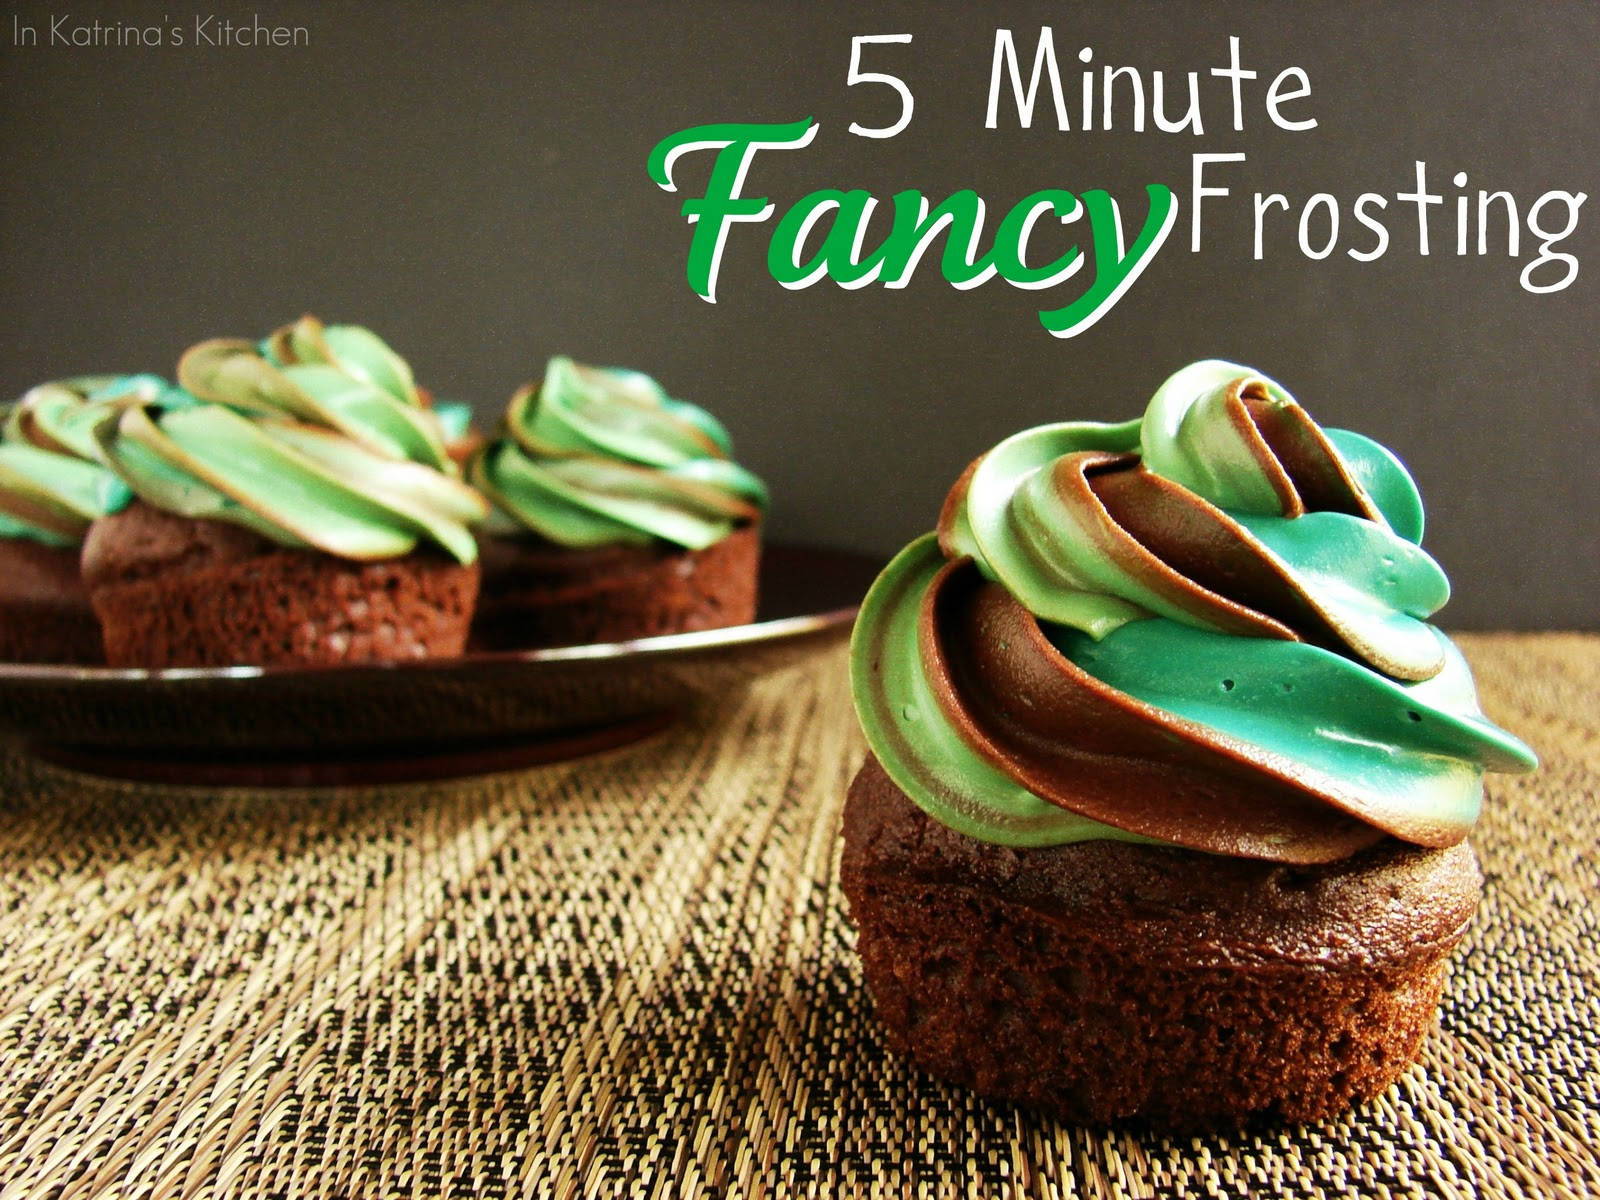 How To Make Icings For Cupcakes  5 Minute Fancy Frosting